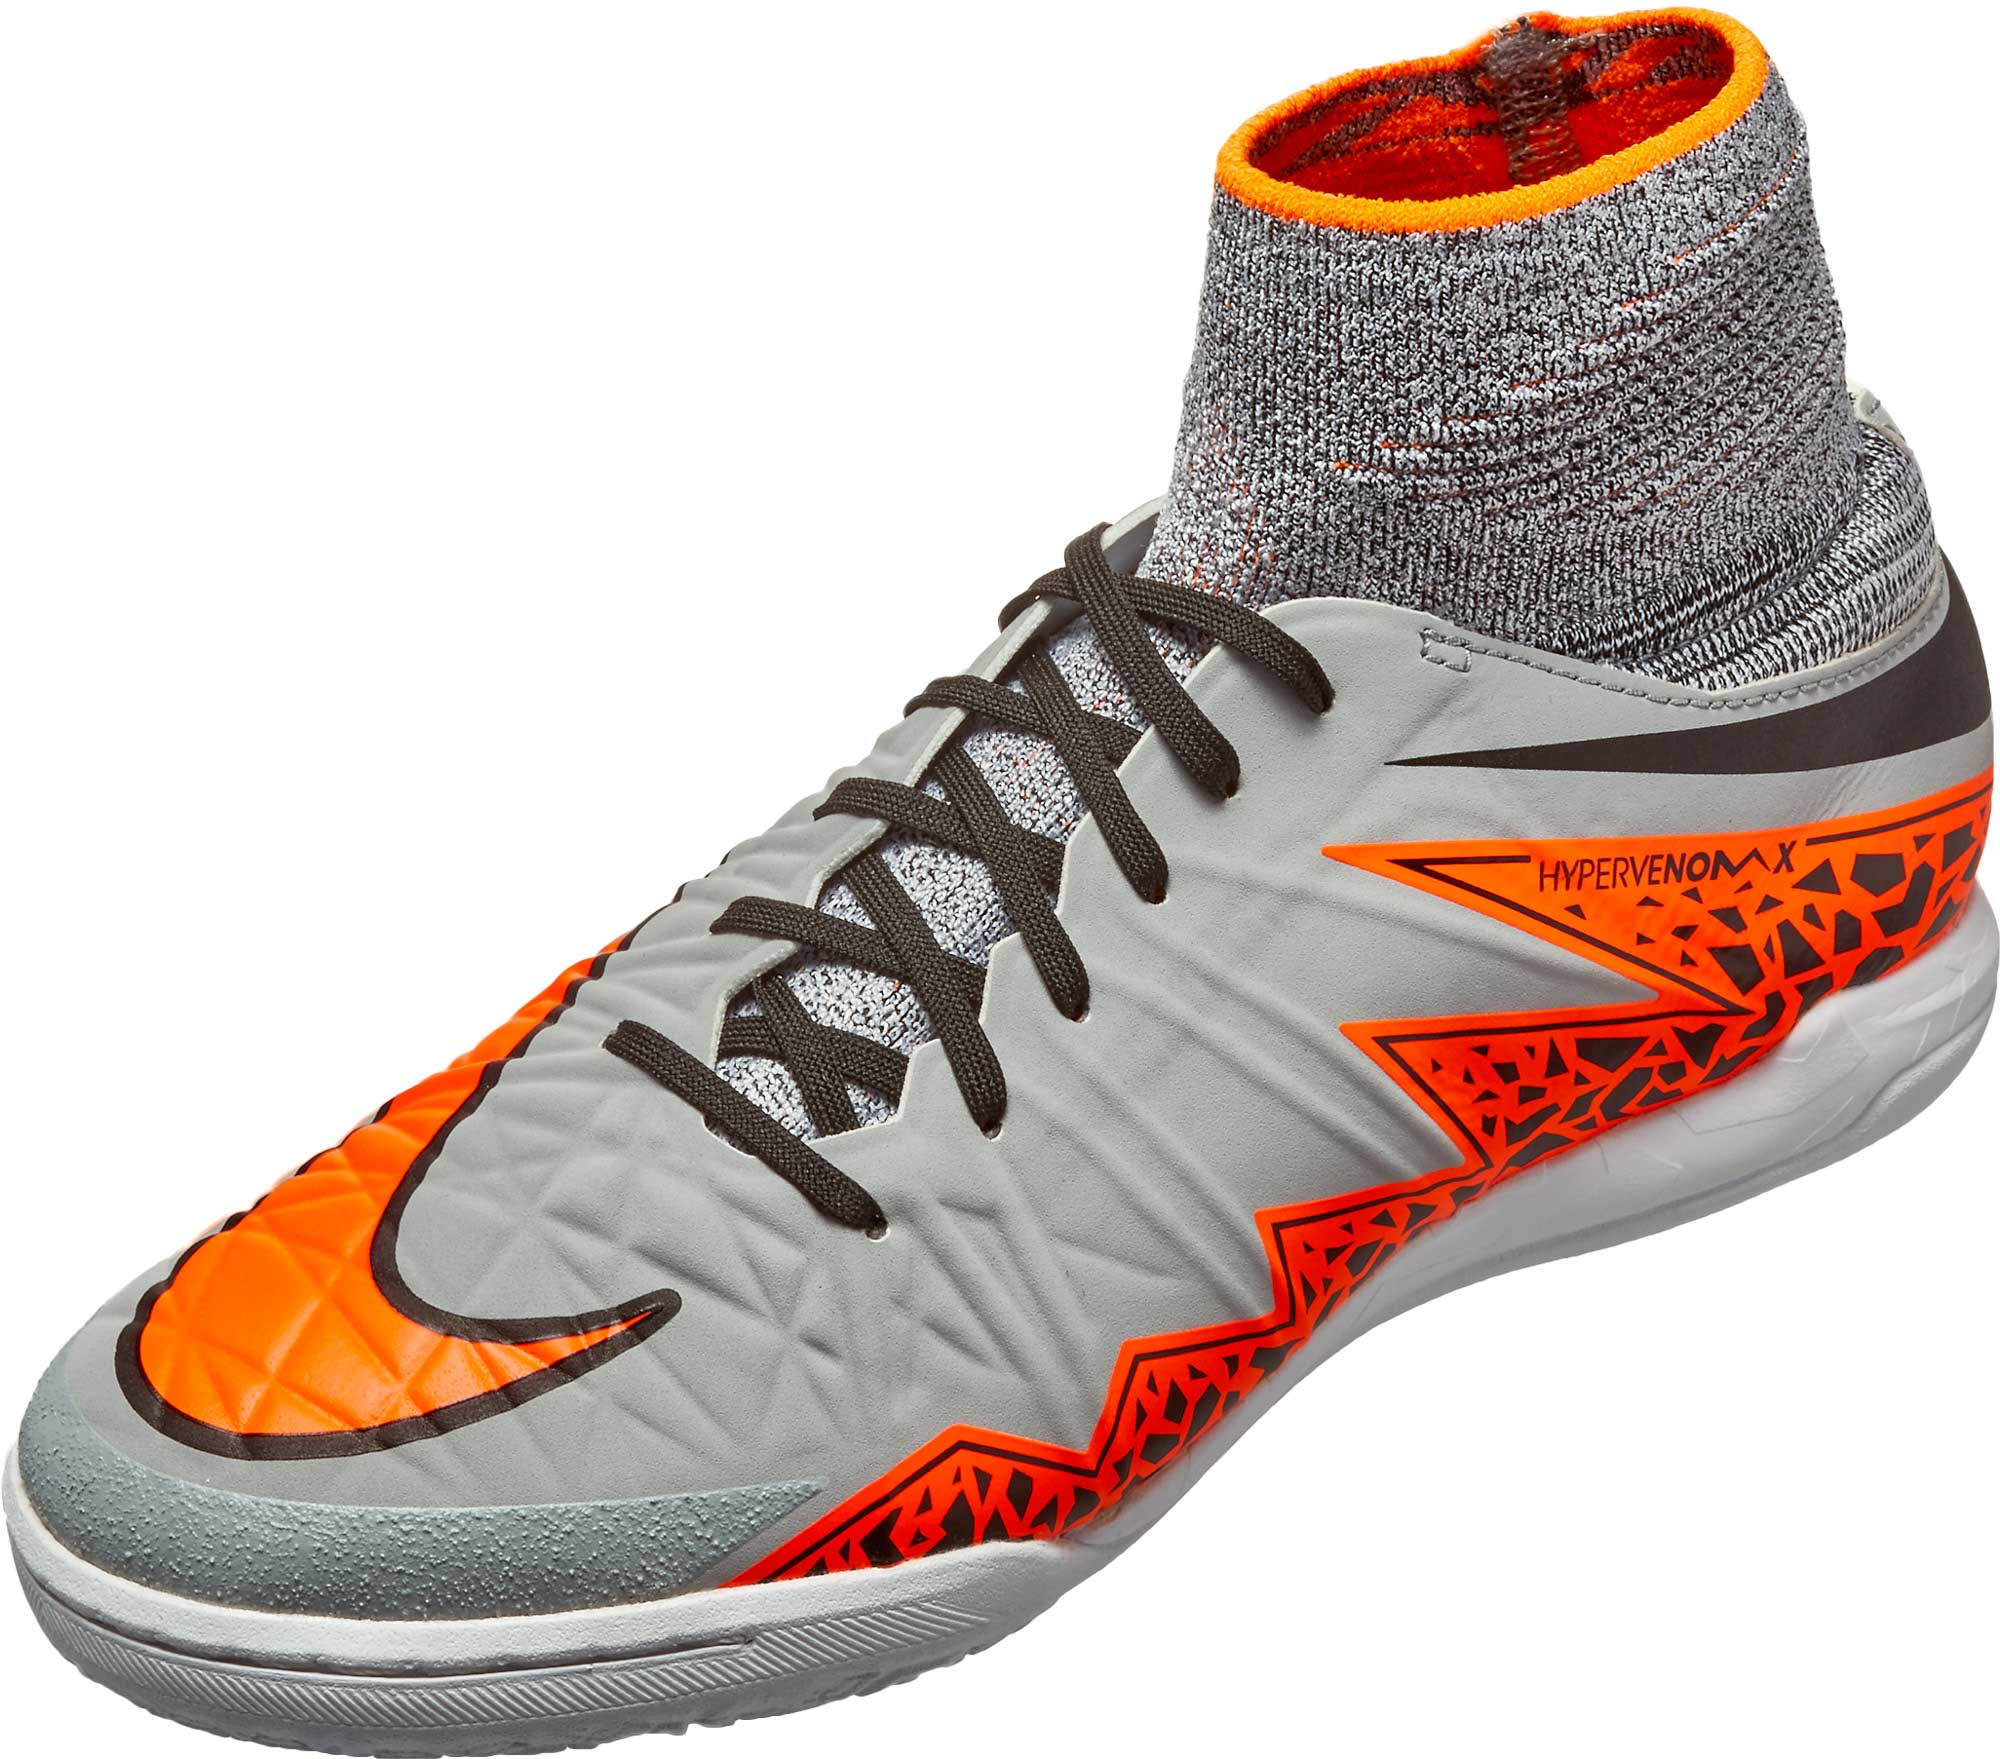 half off e734e a5cc7 Nike Kids HypervenomX Proximo Indoor Shoes – Grey Black